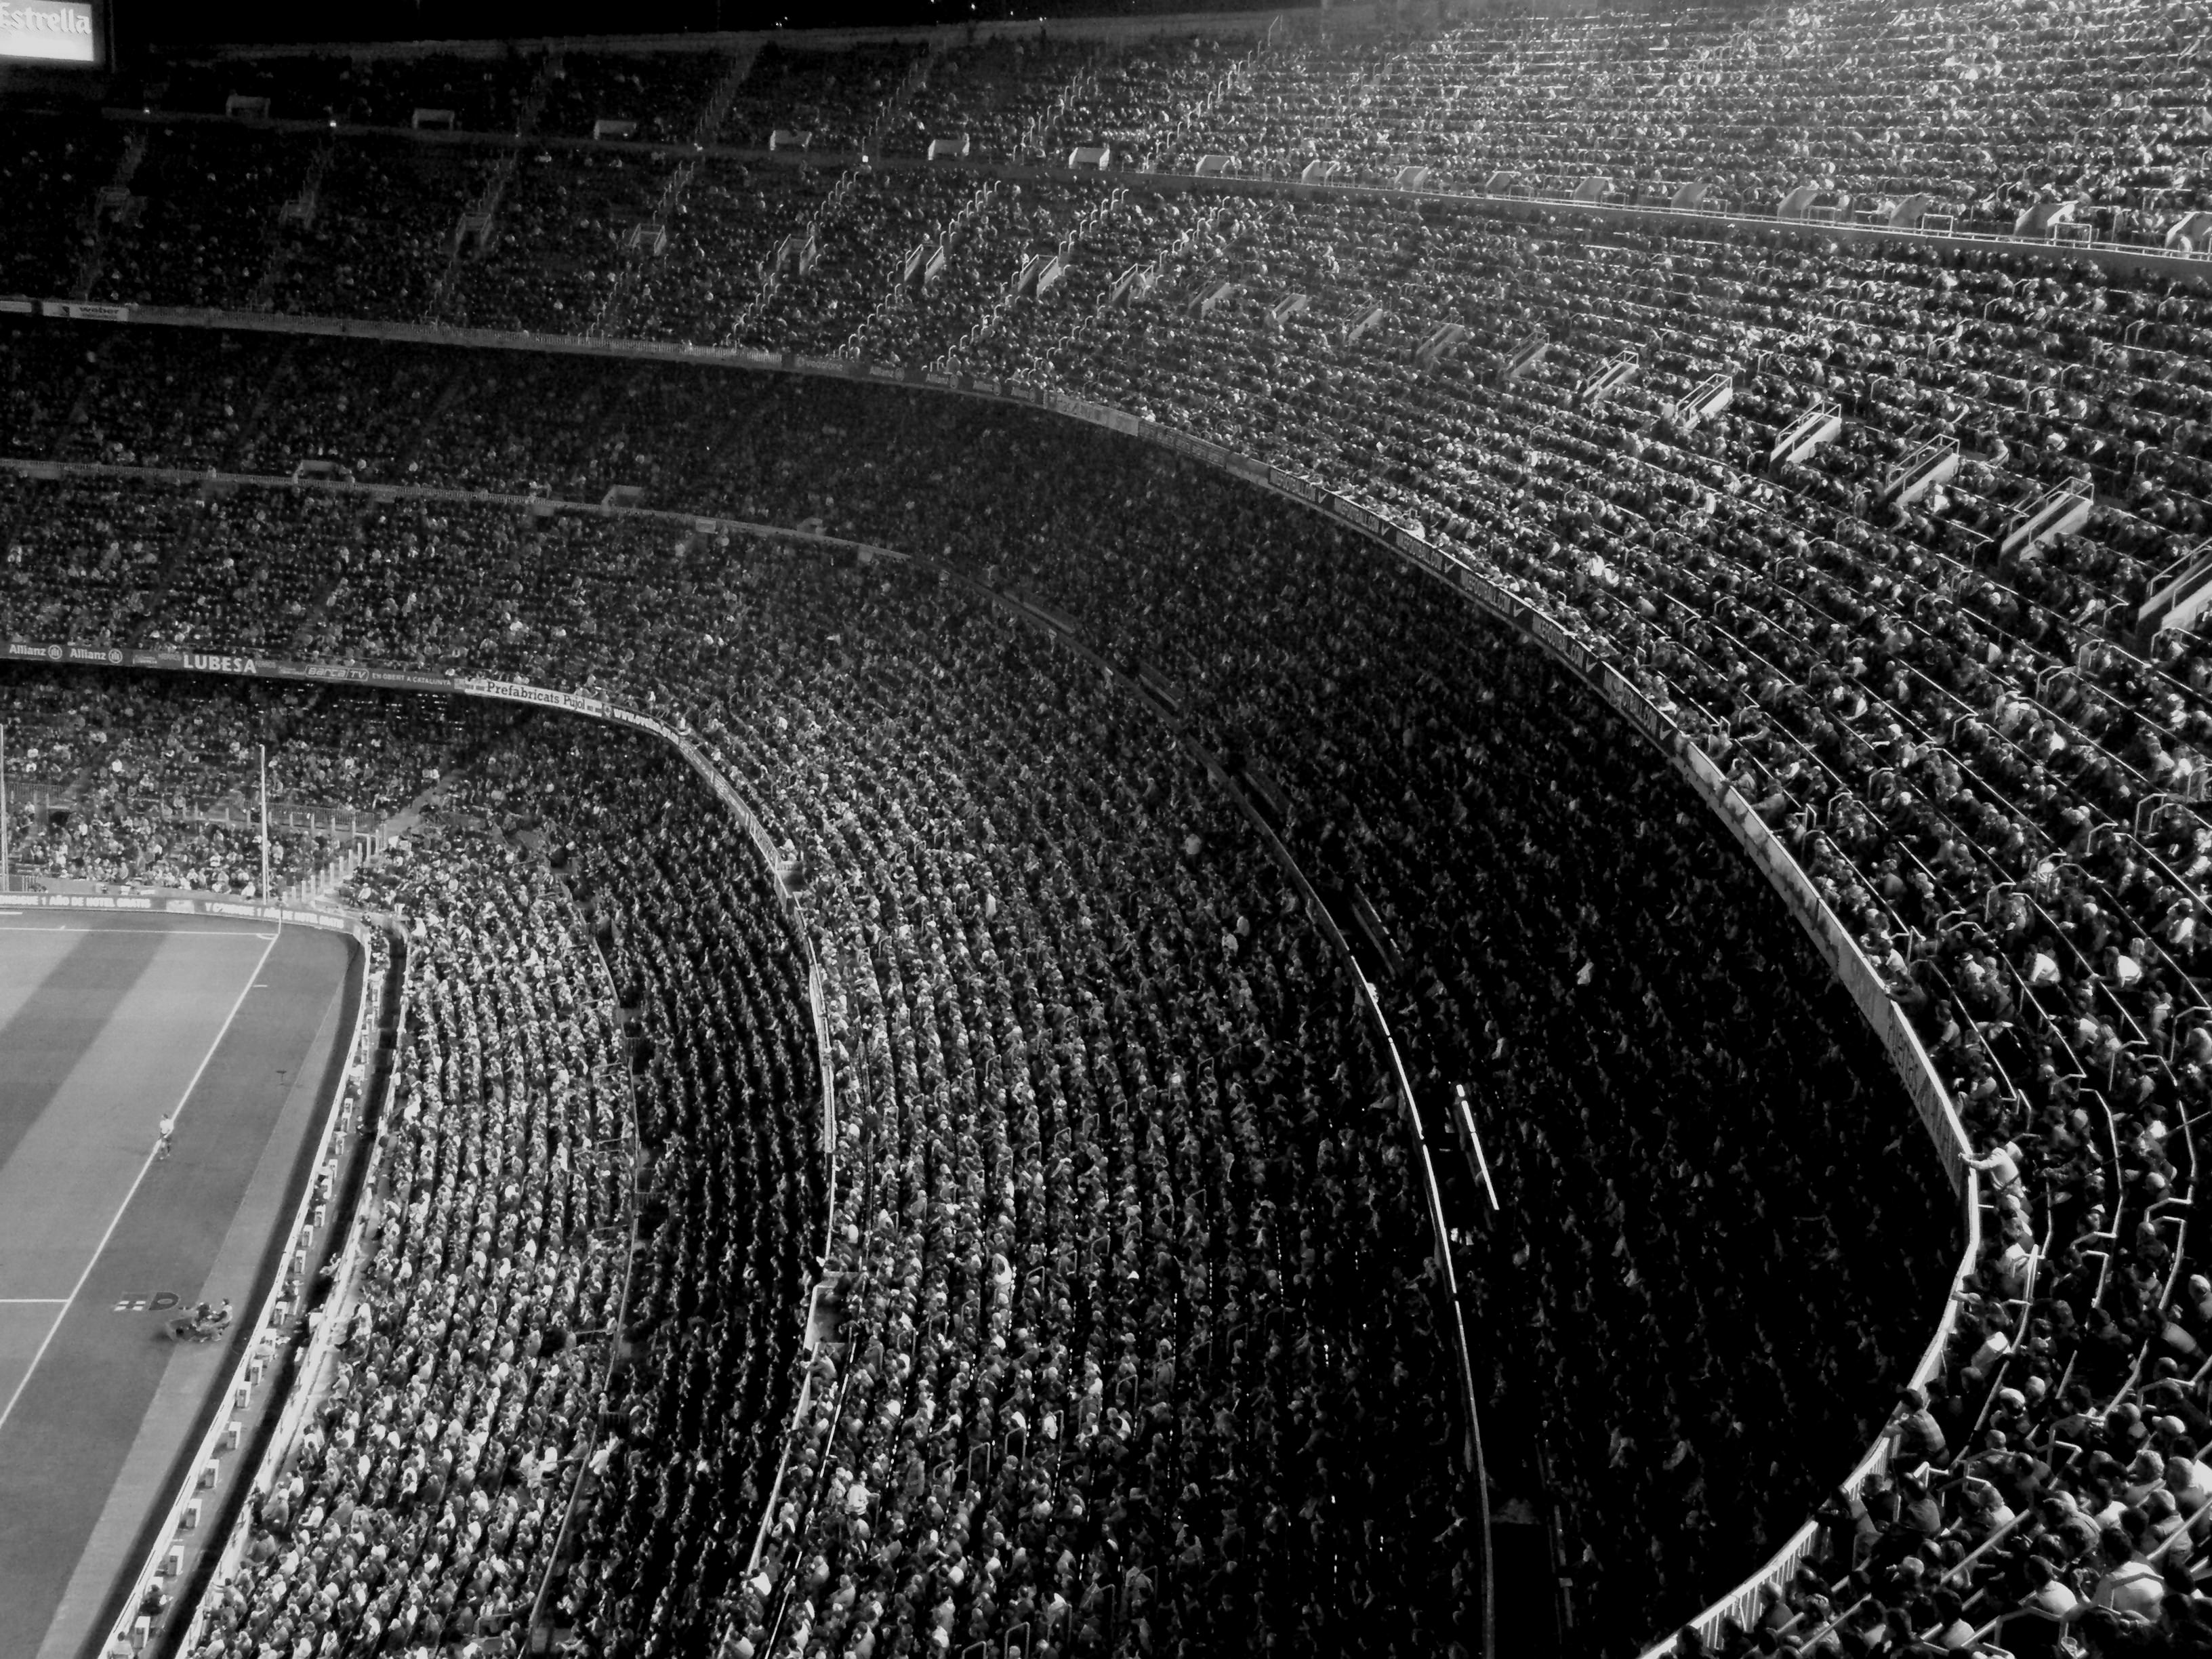 black and white stadium background